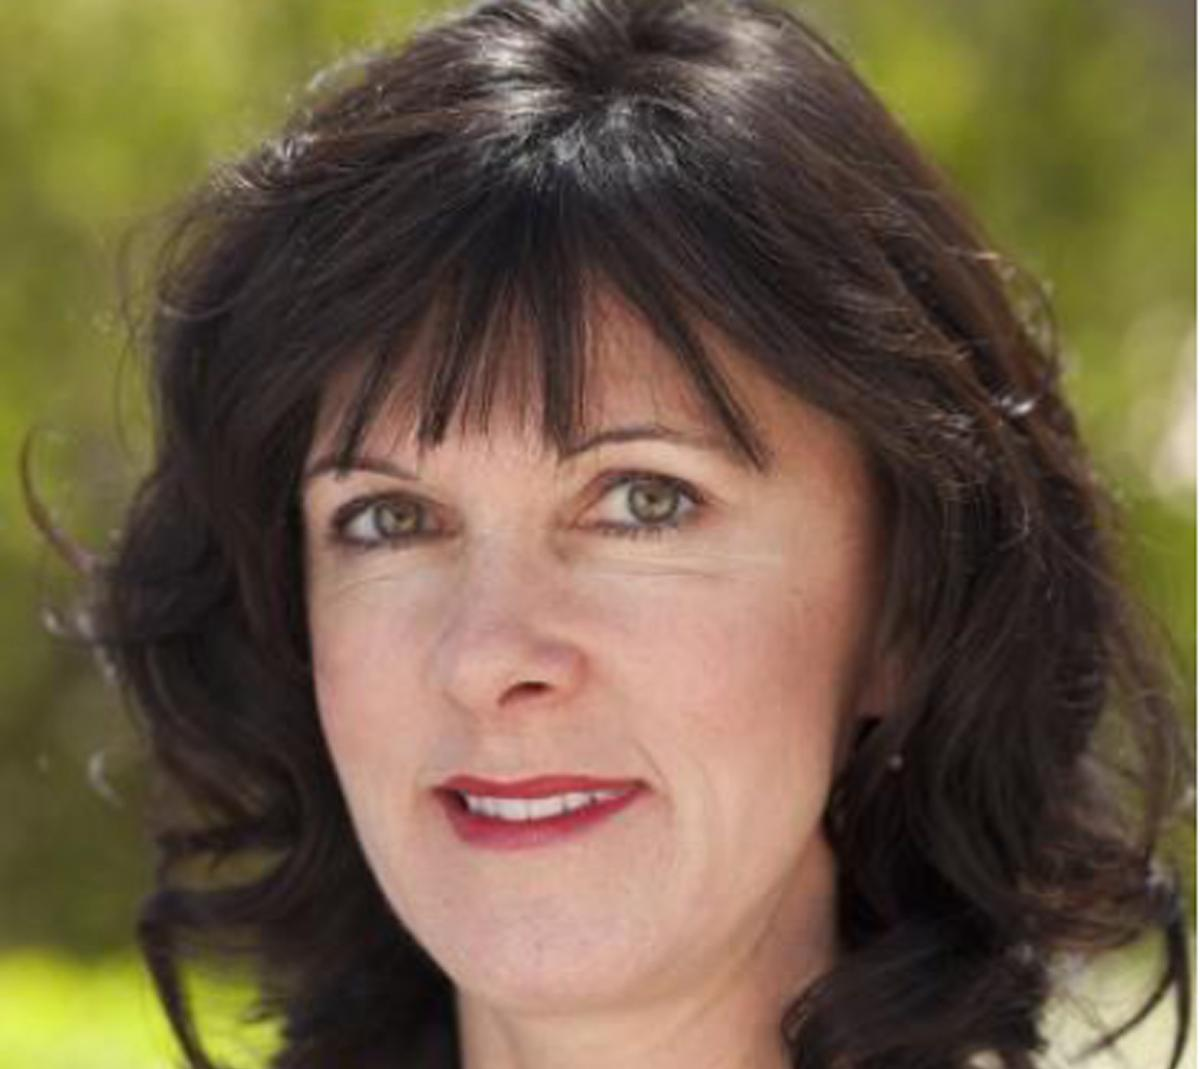 Sandra Foyil has also been announced as Sensei's new SVP of operations and people operations